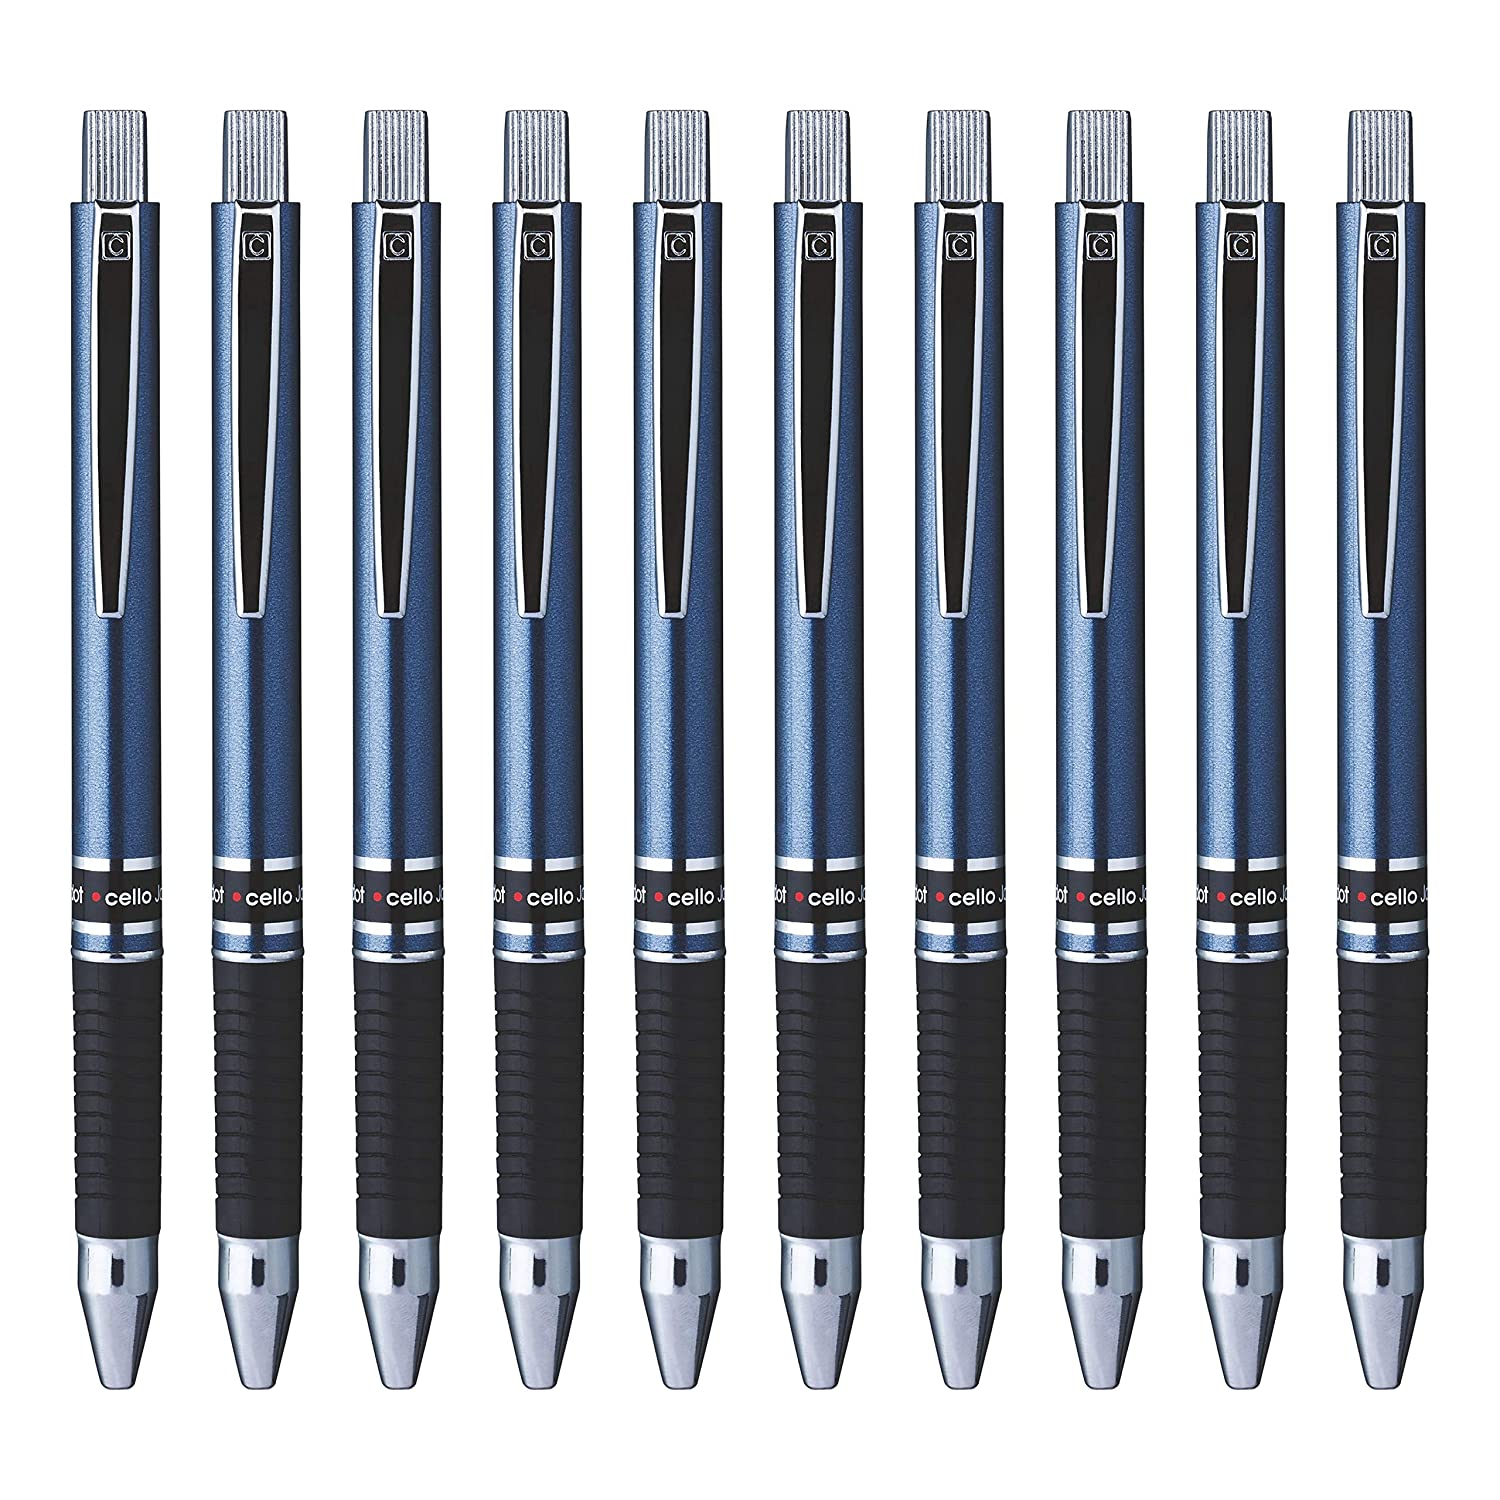 Cello Jotdot Ball Pen - Pack of 10 (Ink- Blue,body Color - Multiple)